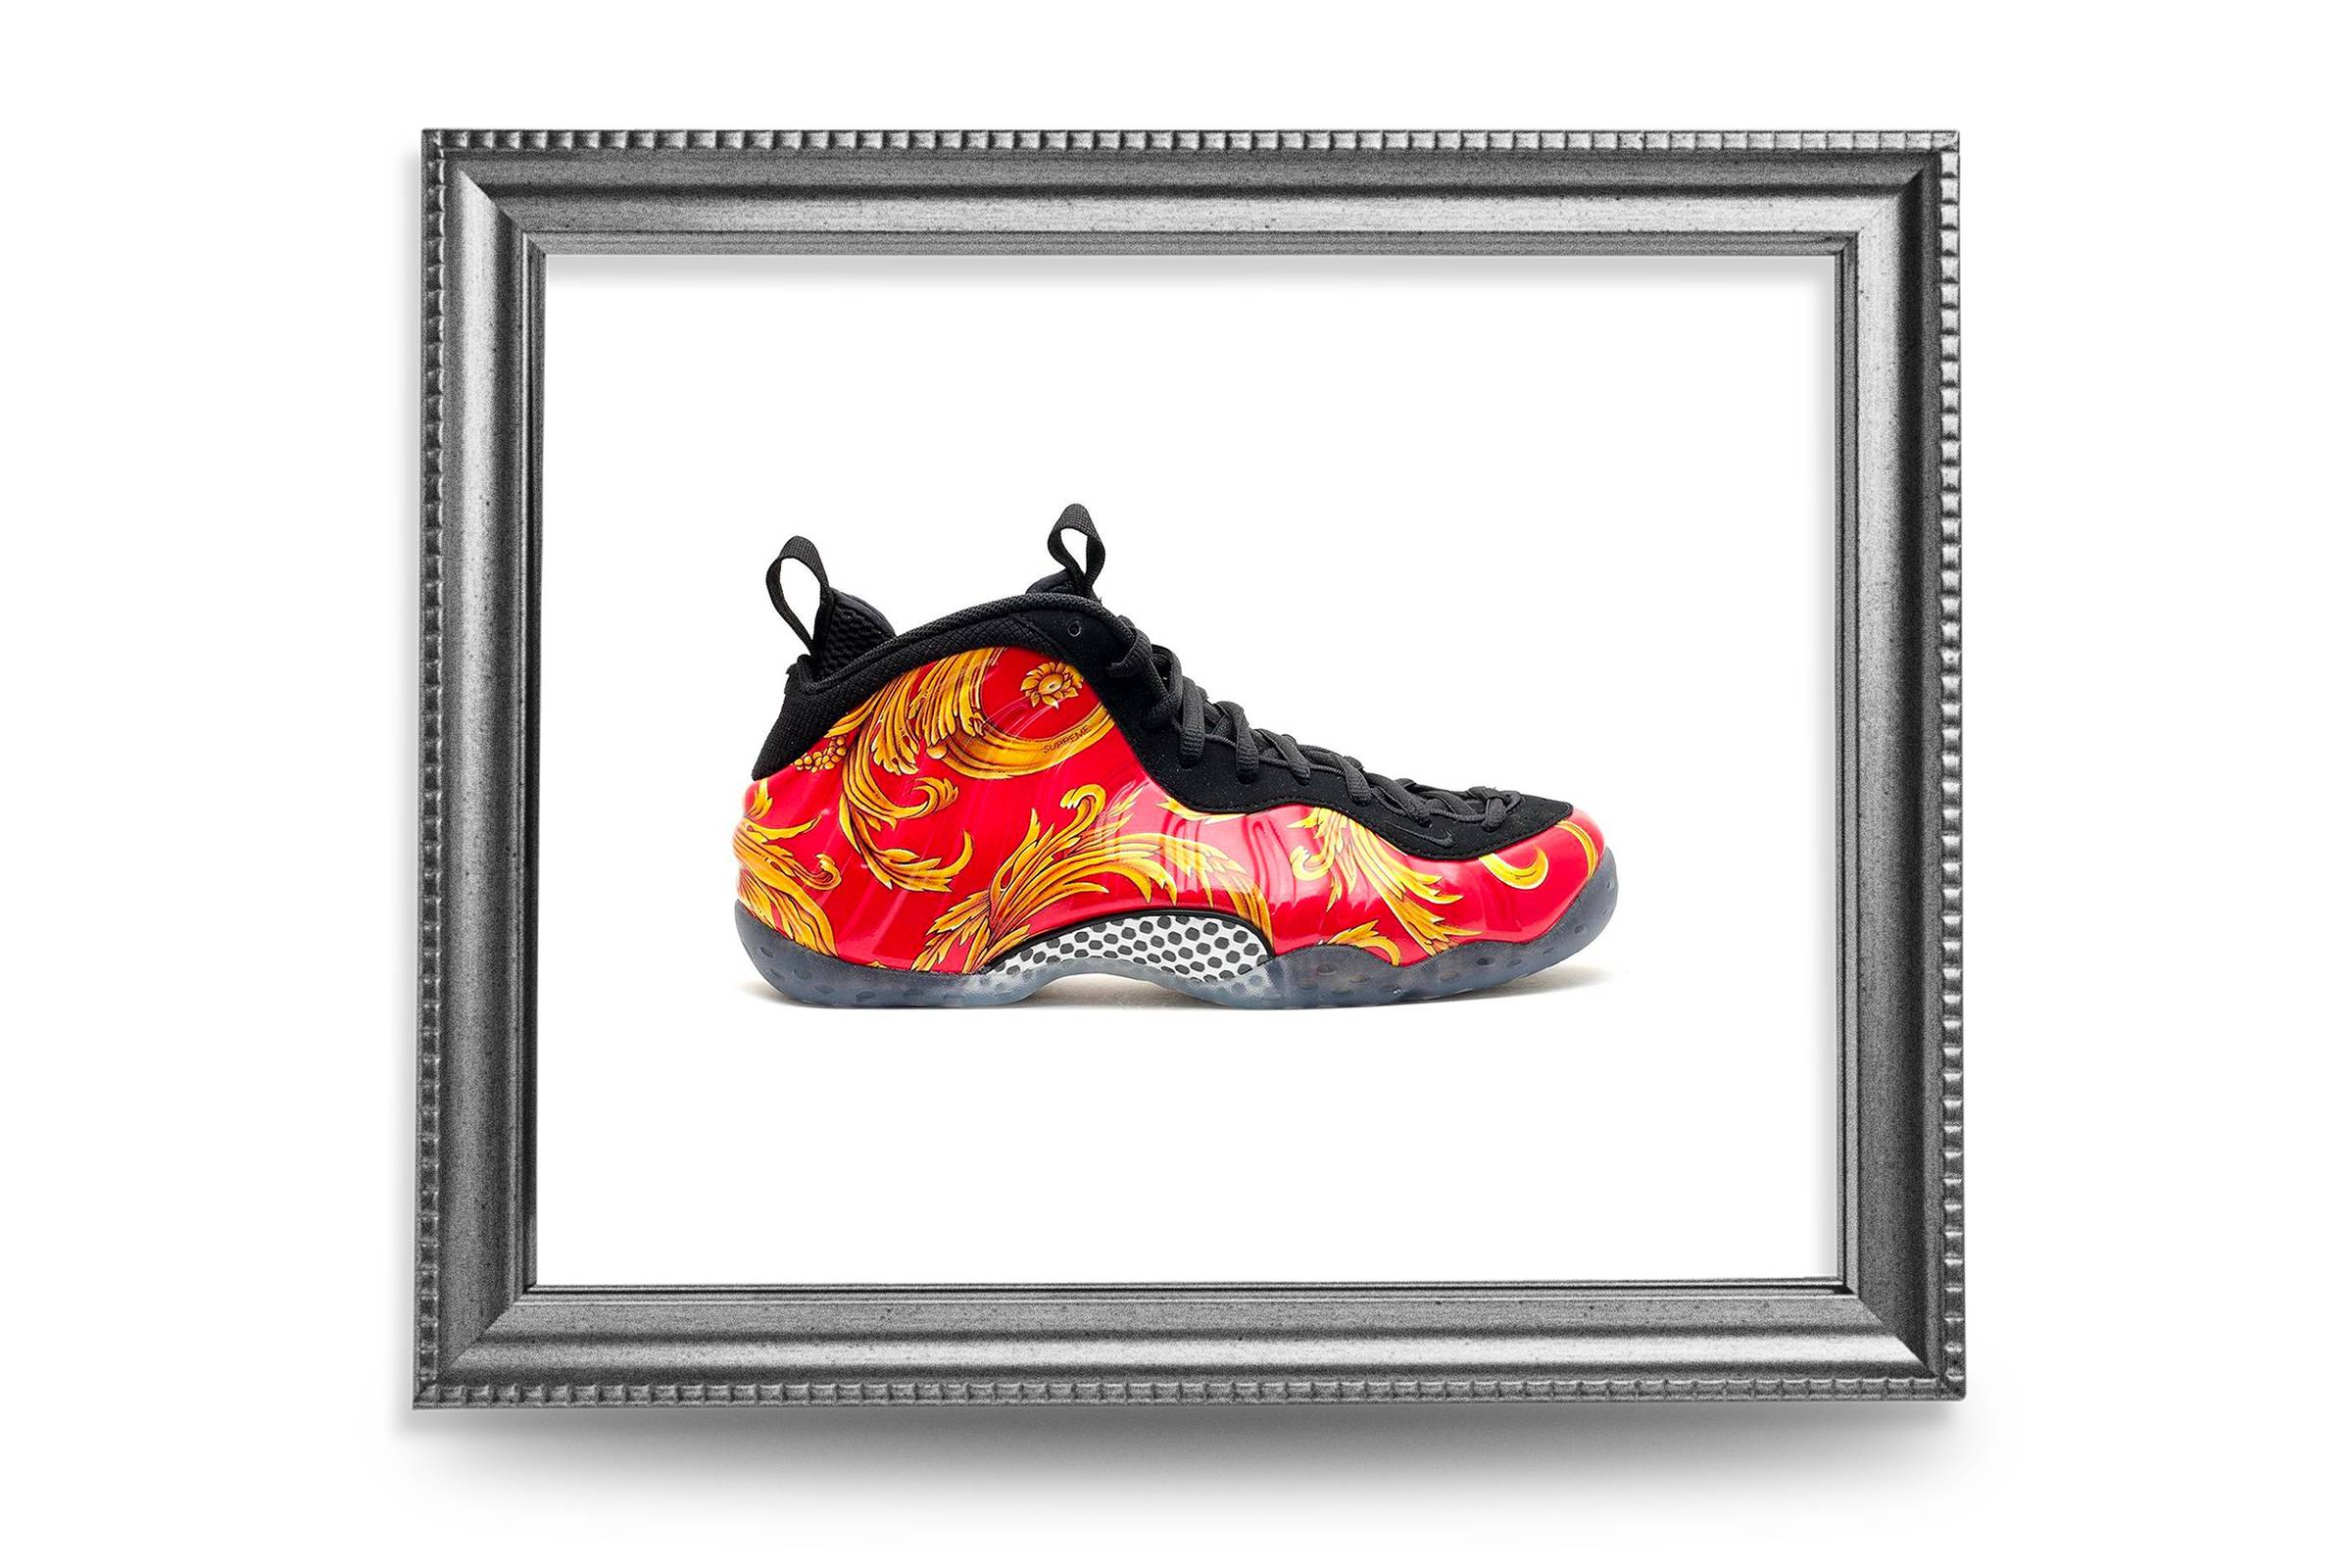 The 10 Rarest Sneakers On Grailed: Week of May 10, 2020